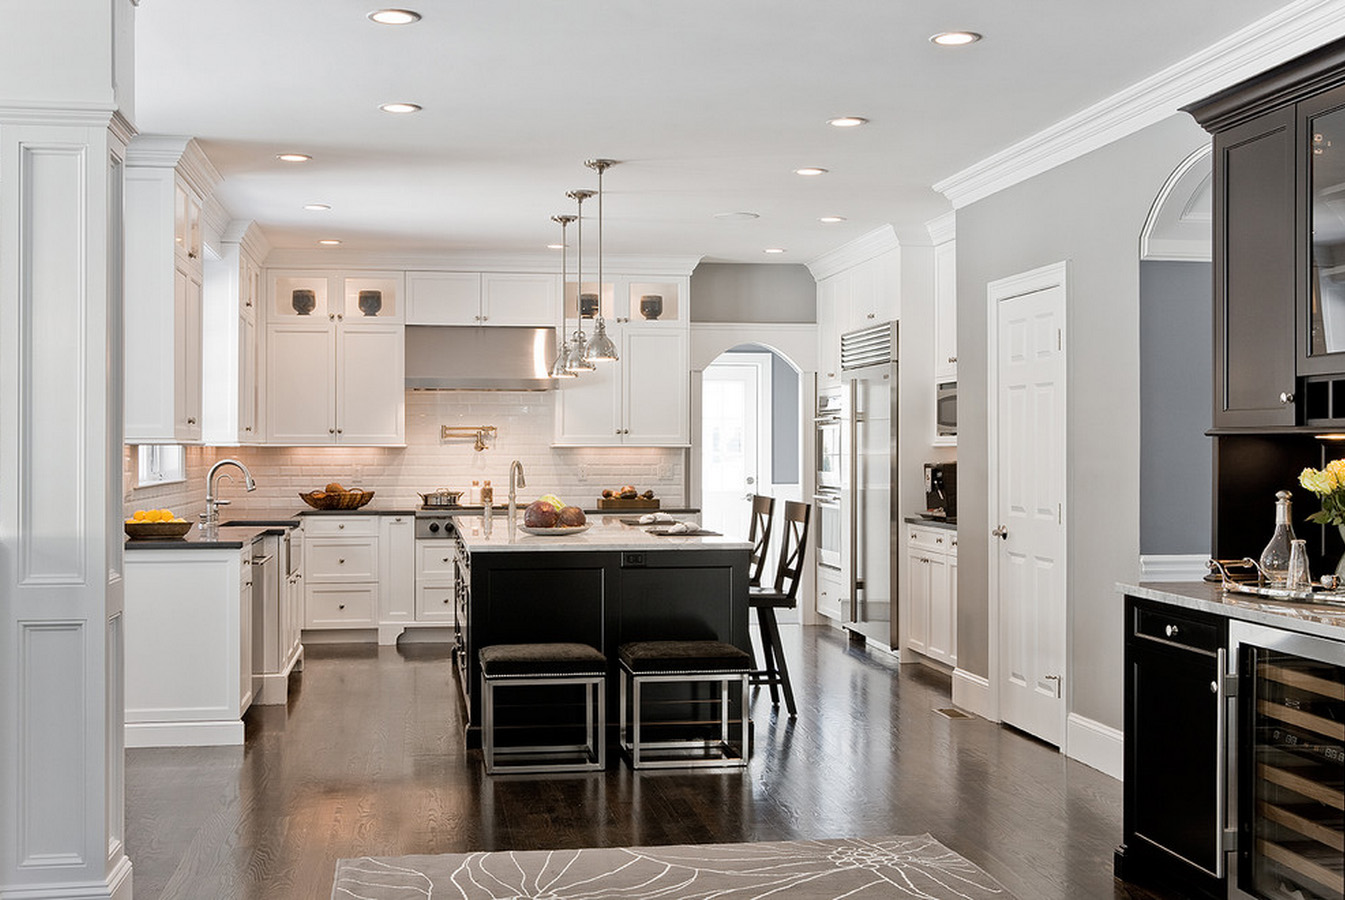 Top 15 Stunning Kitchen Design Ideas and Costs – Home Improvement ...